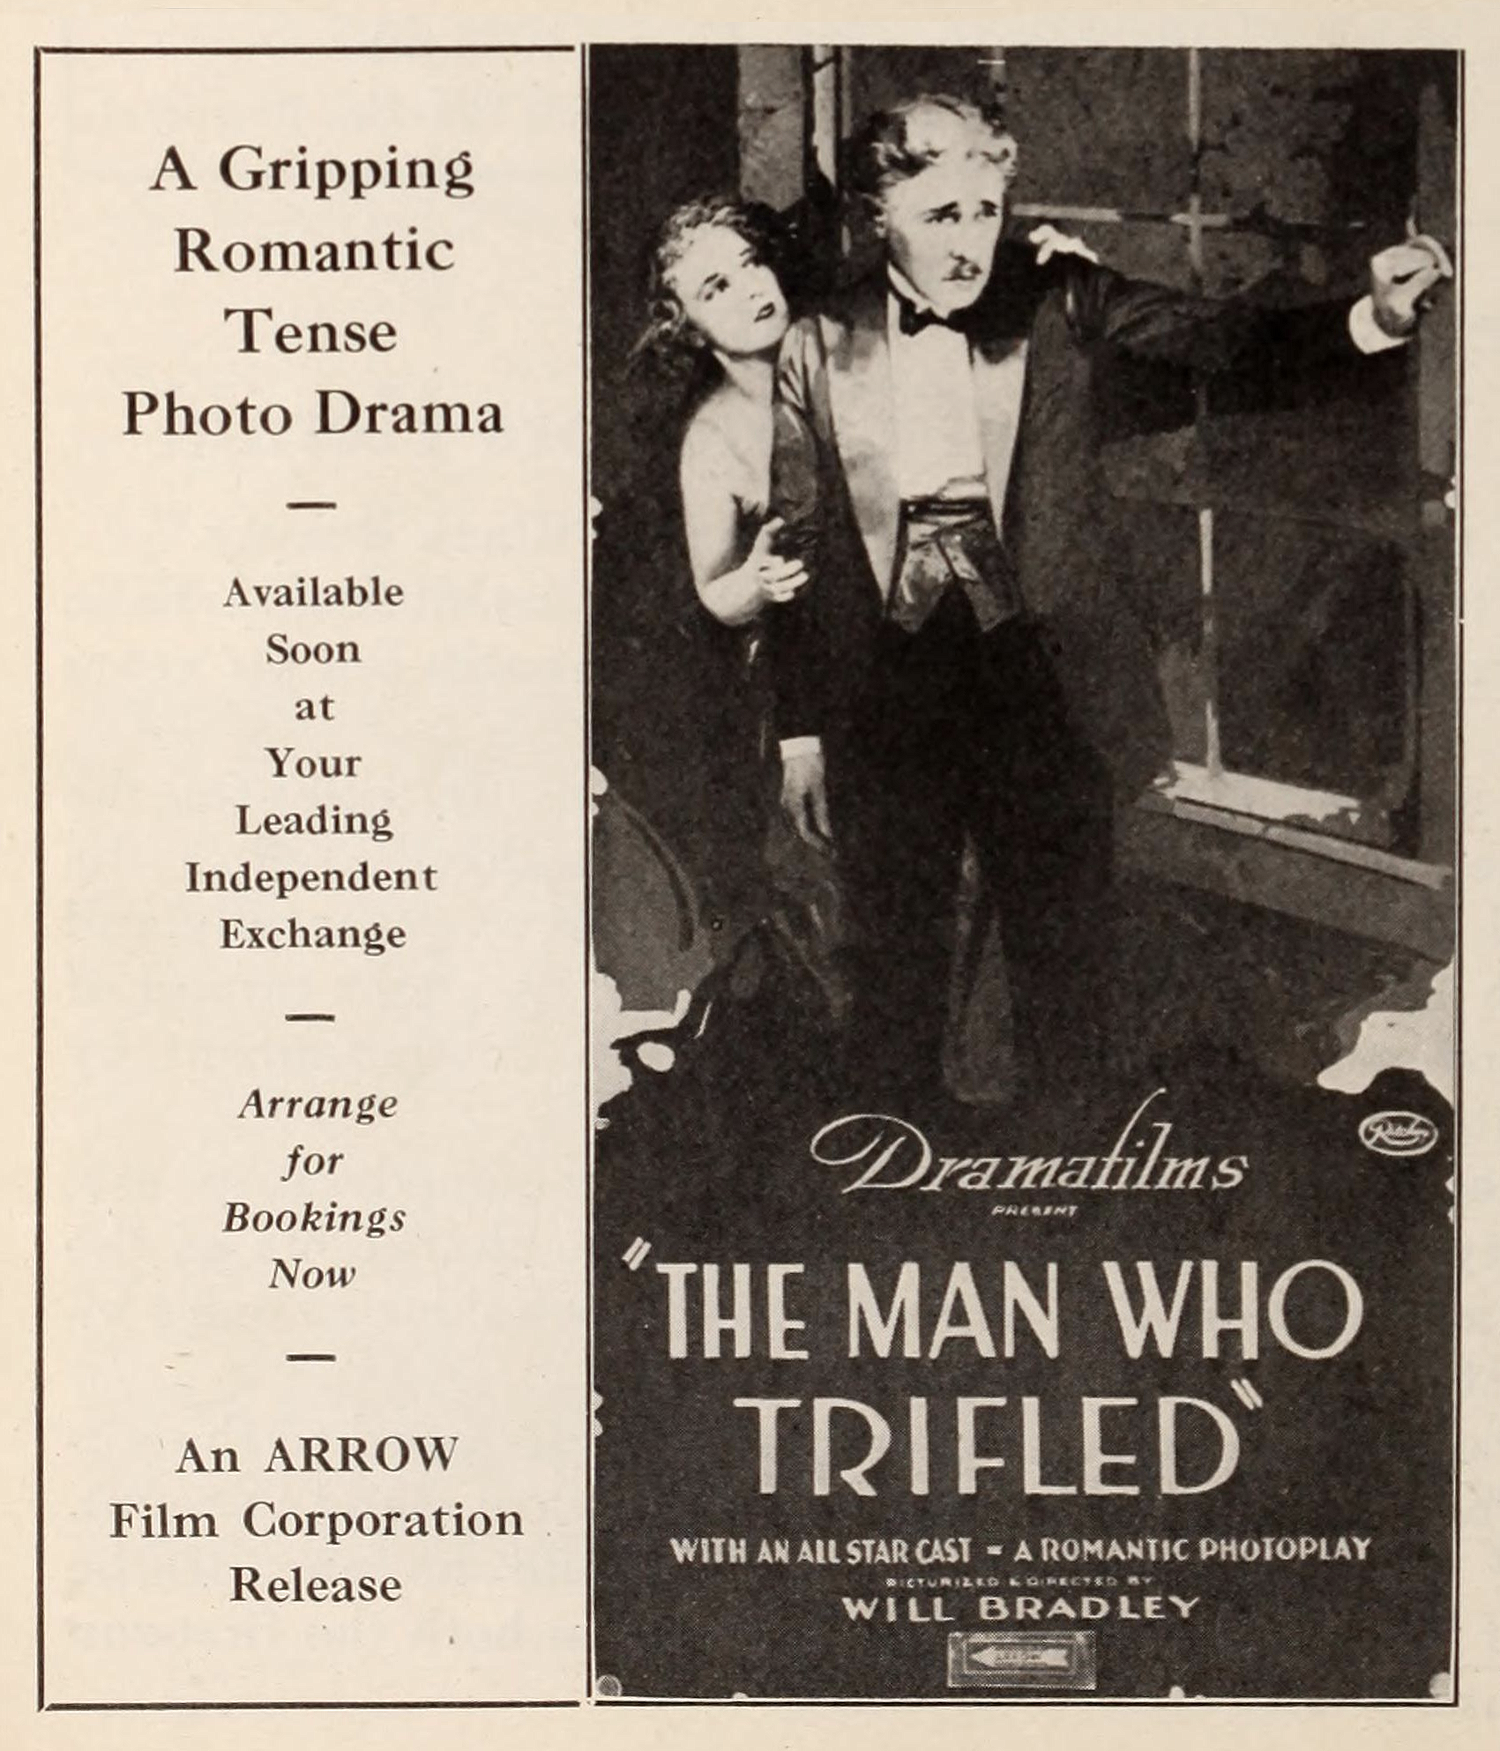 1921 The Man Who Trifled ad